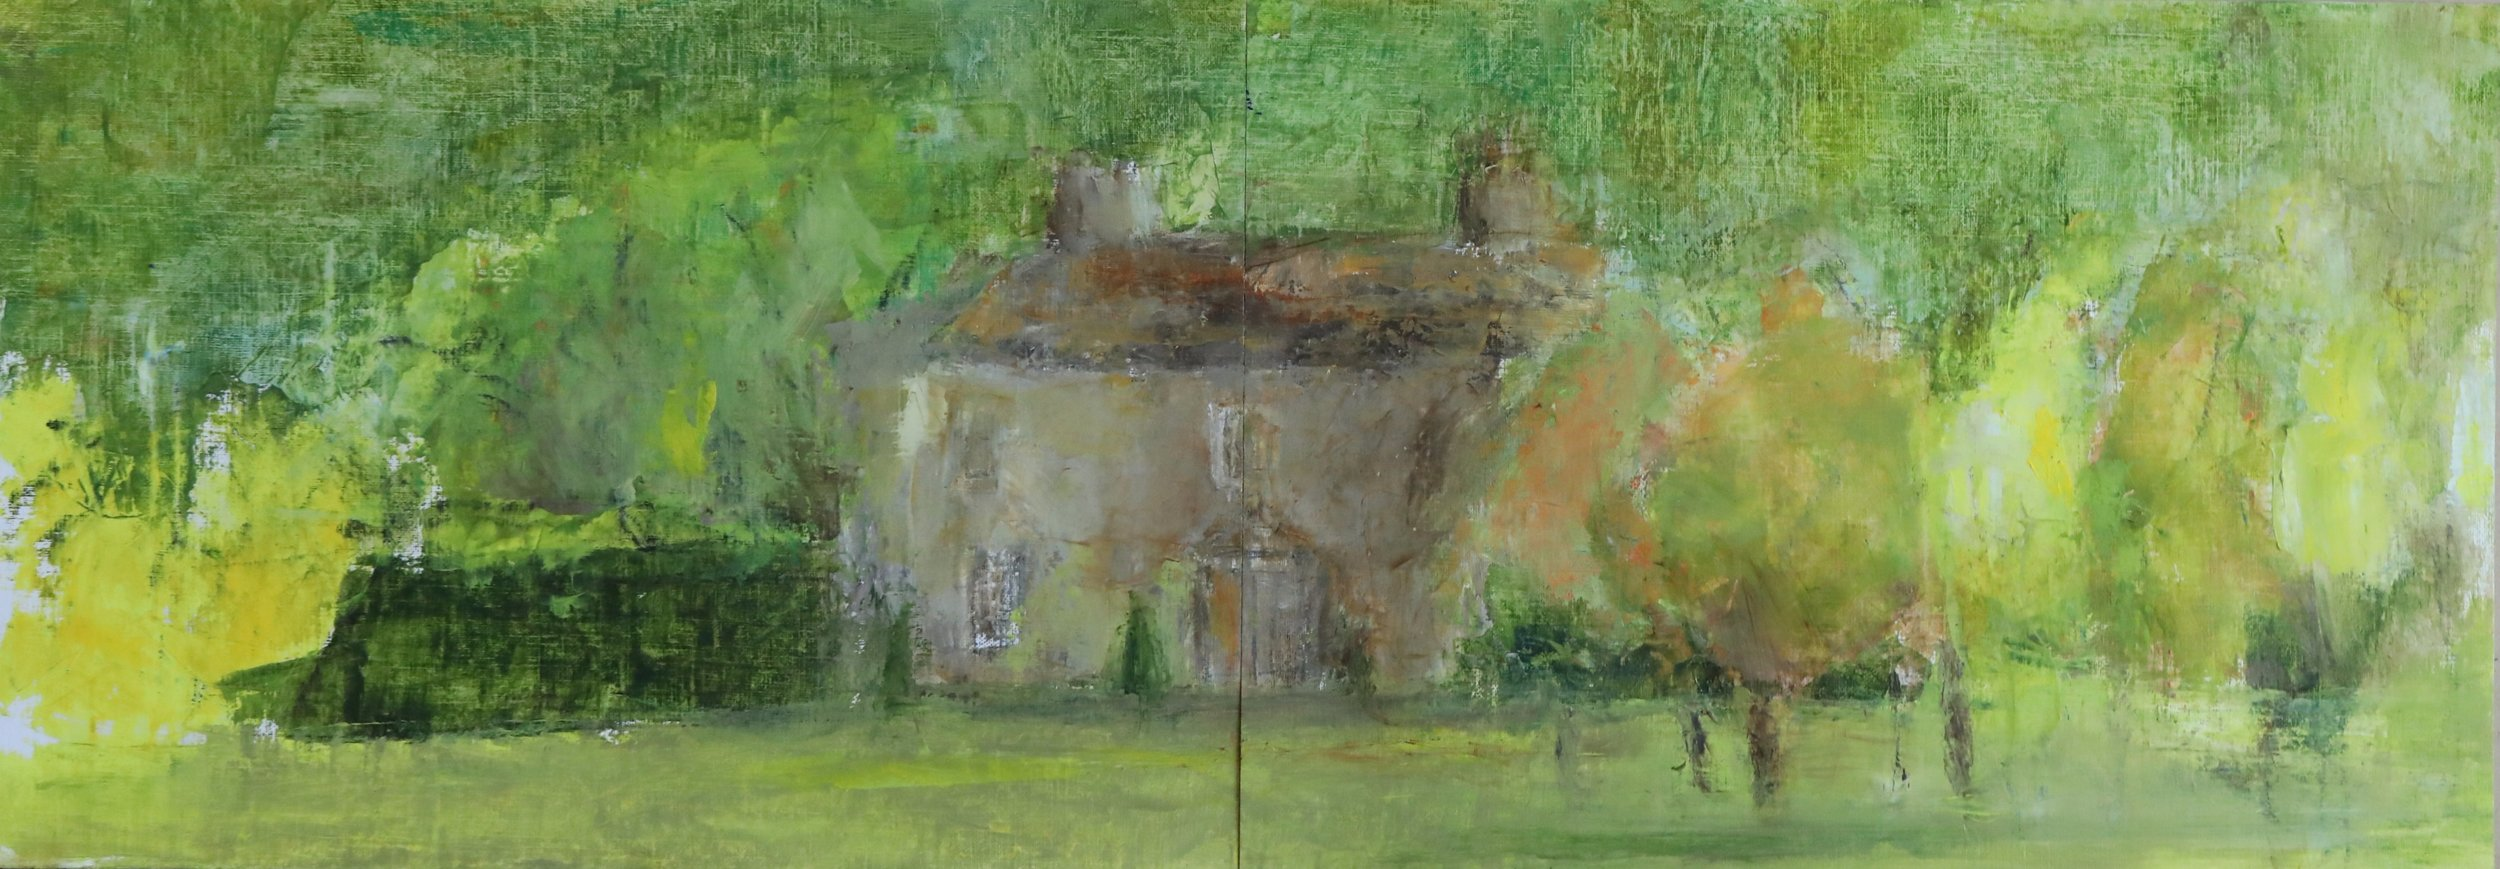 Old Rectory, Dorset